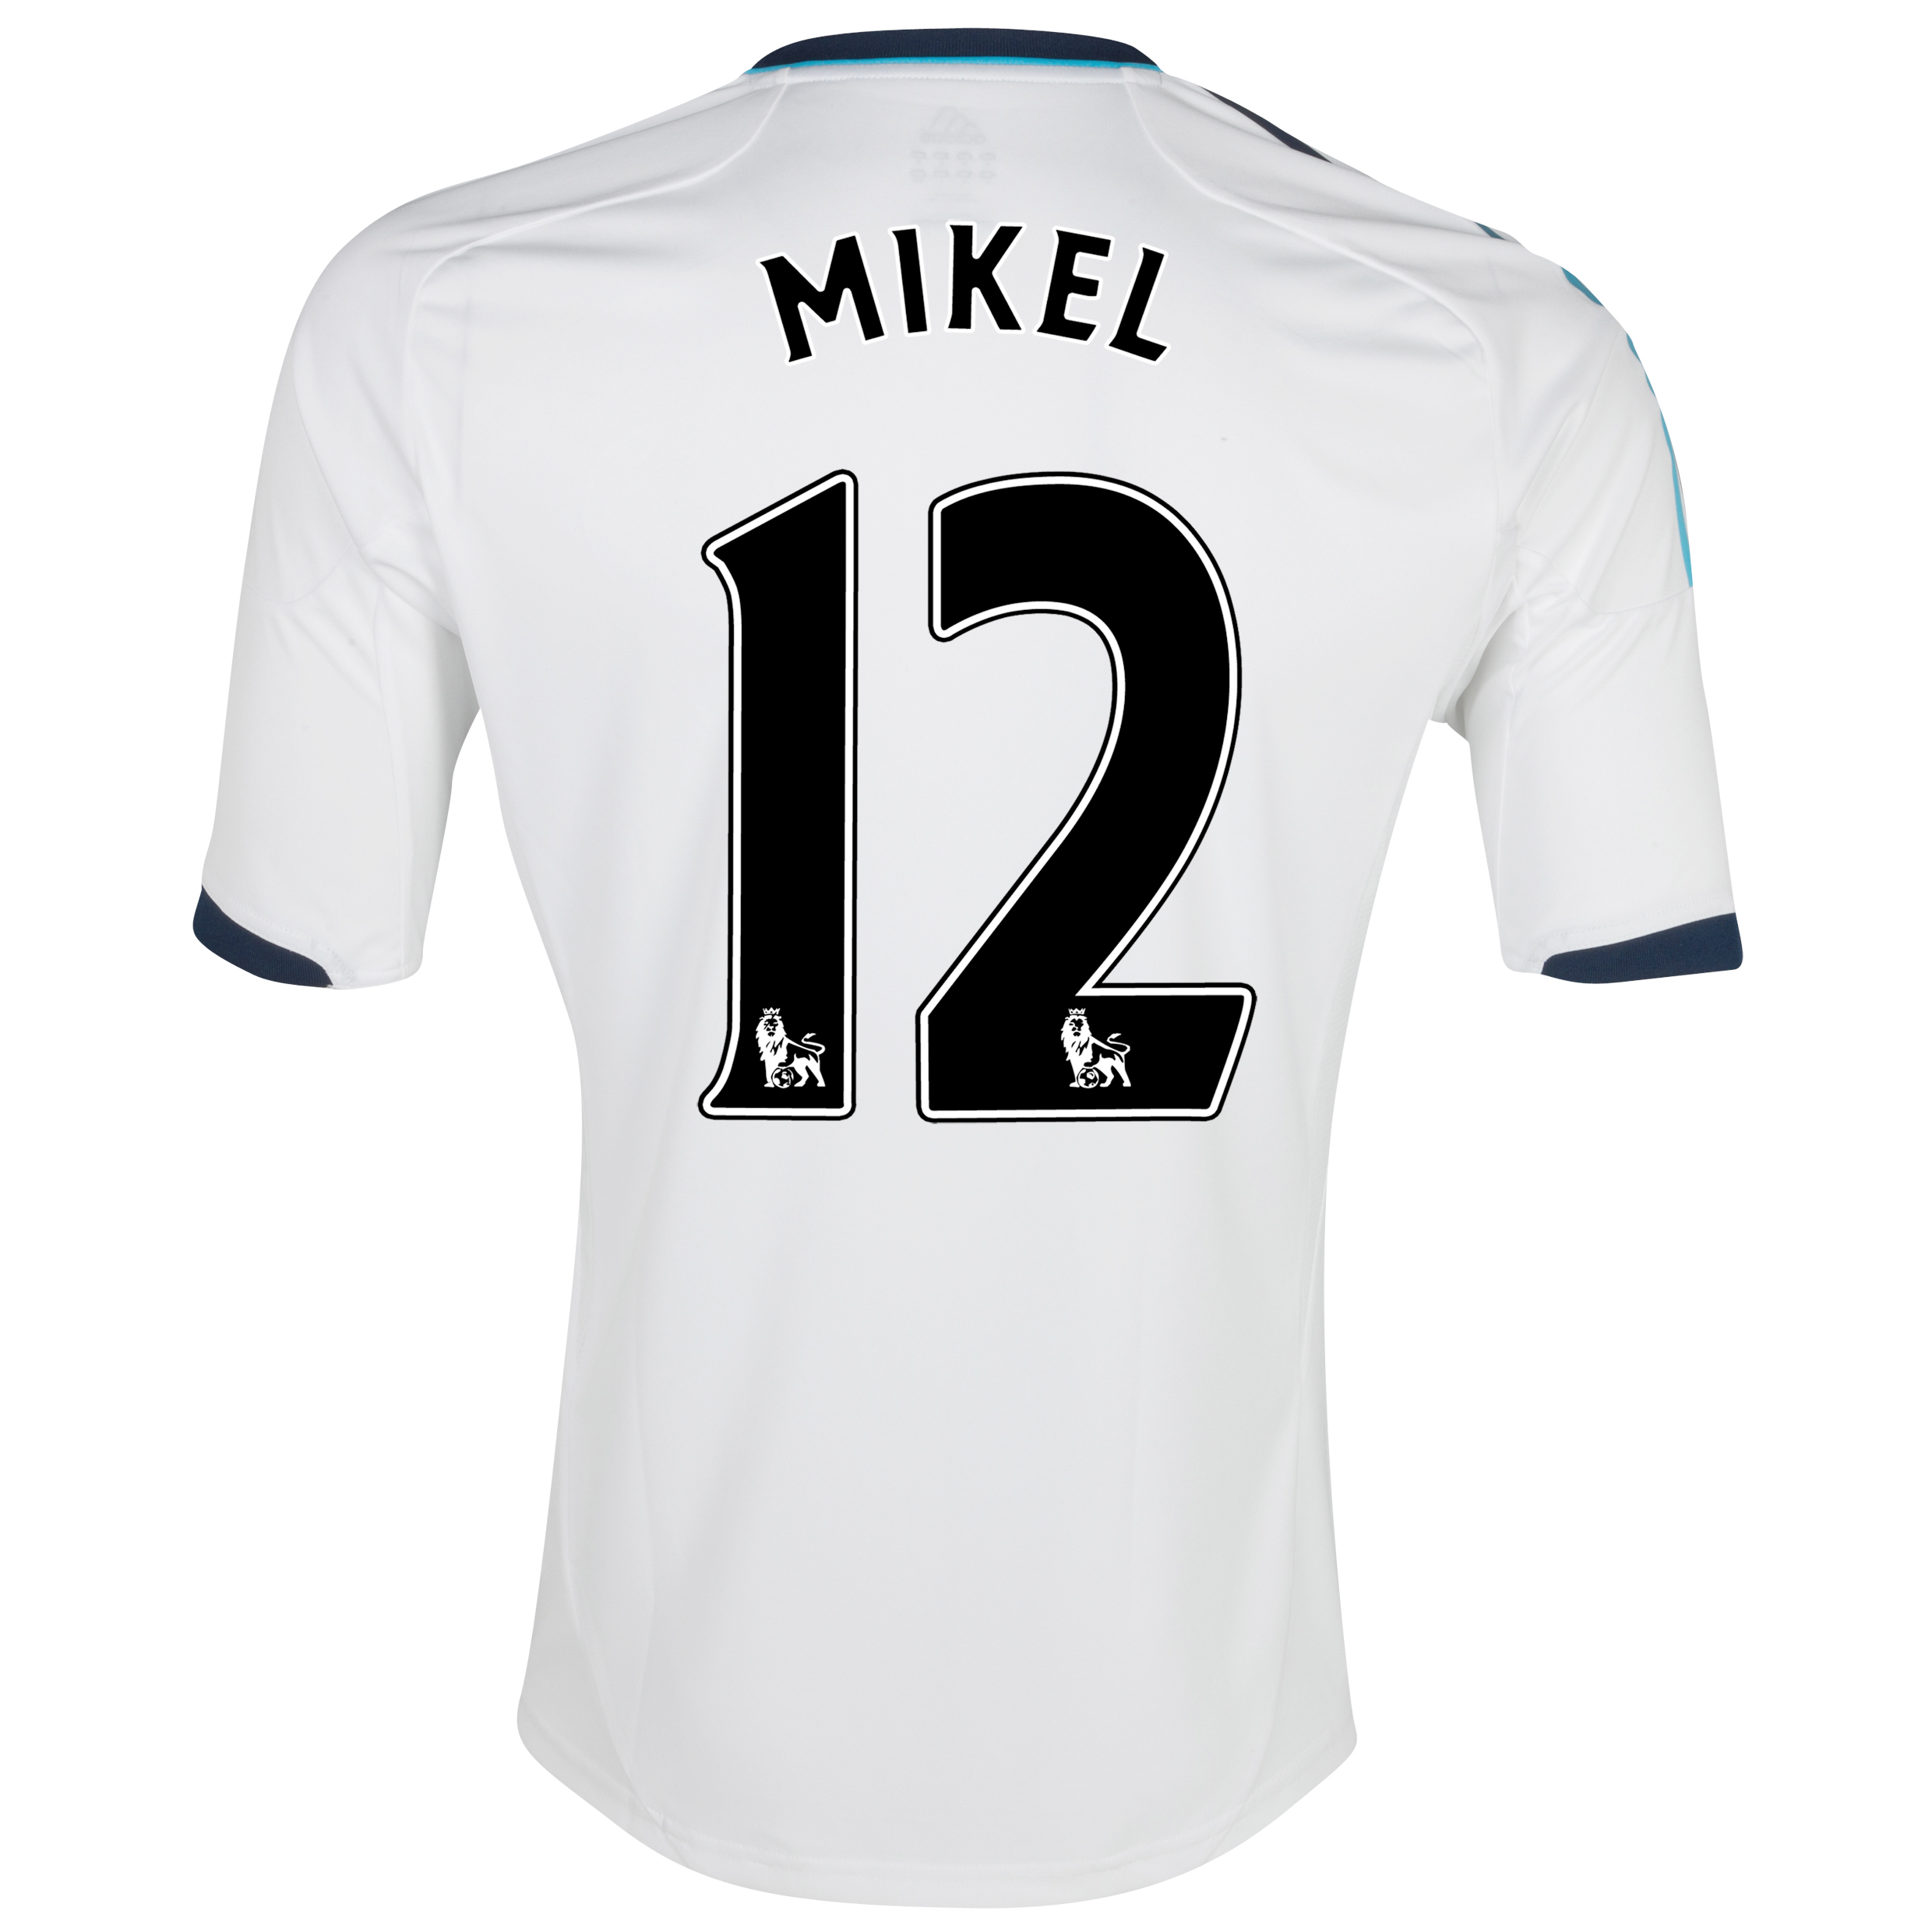 Chelsea Away Shirt 2012/13 with Mikel 12 printing